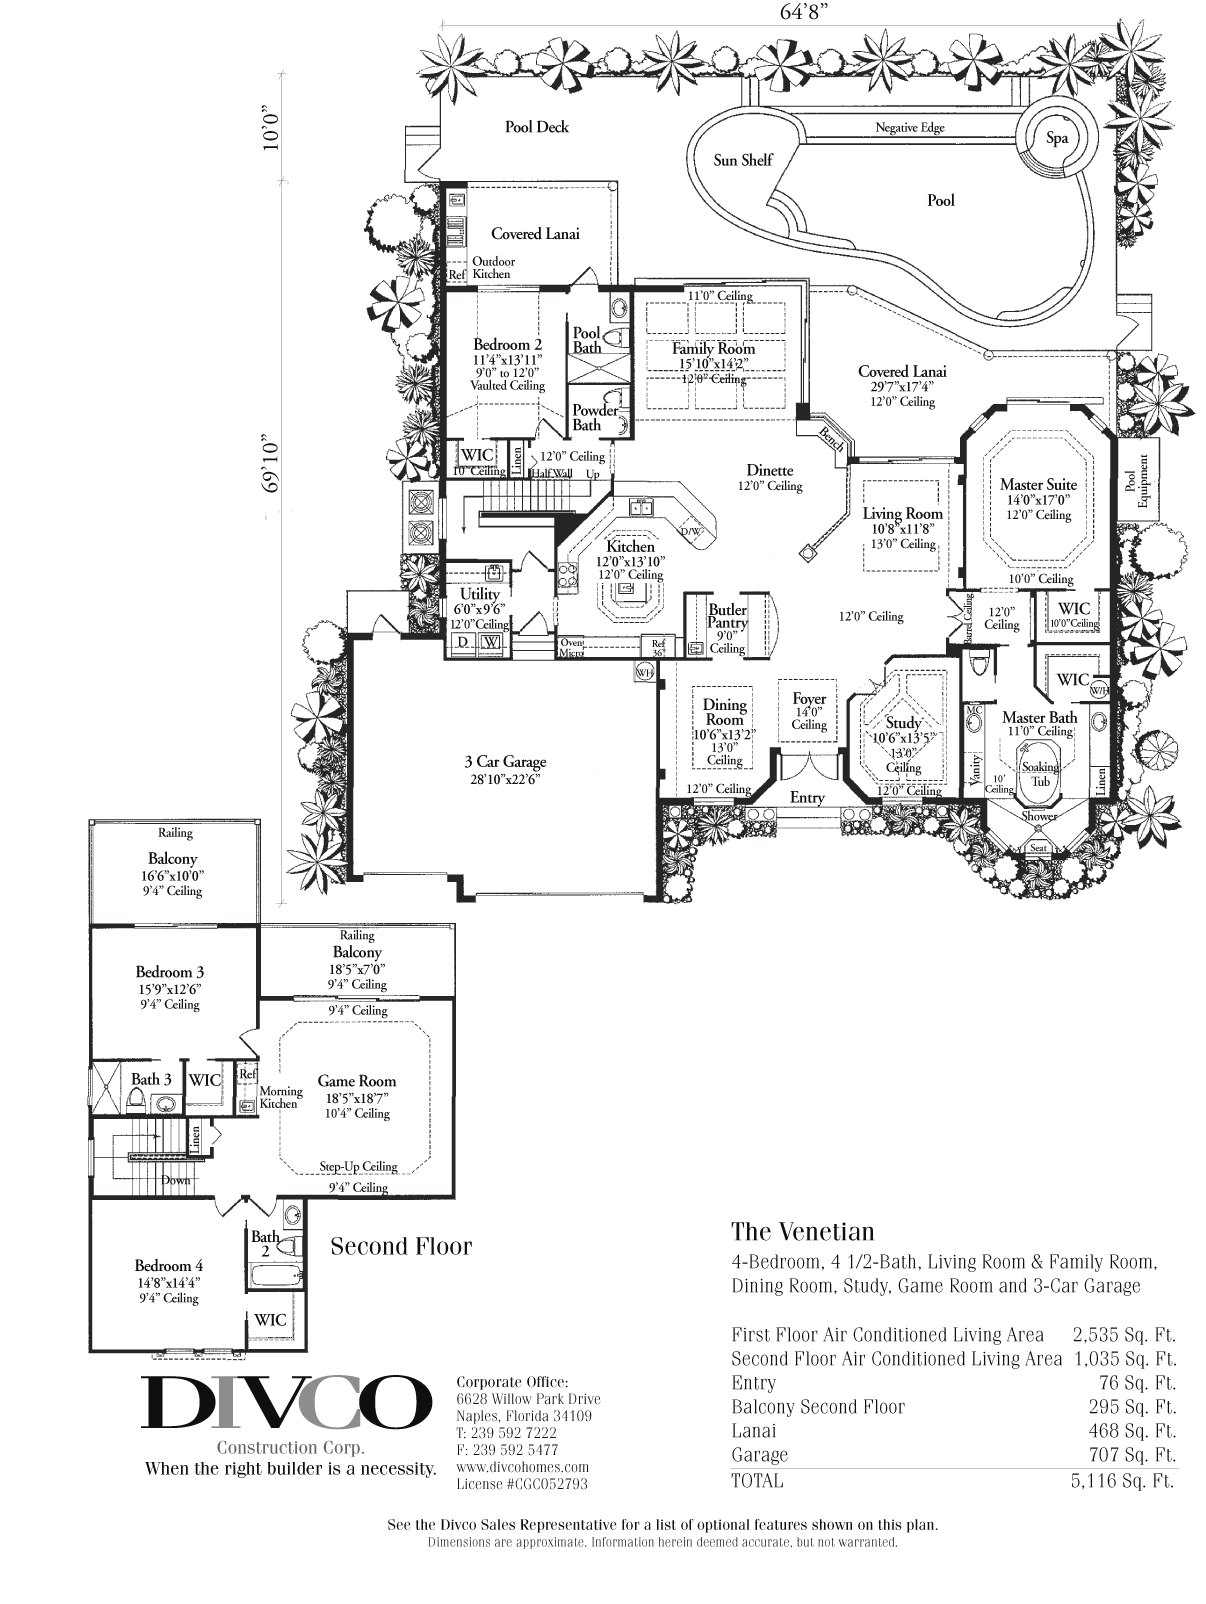 Luxury Floor Plans home design plan modern mesmerizing Home Floor Plans With Pictures Luxury Home Floor Plans Marco Island Venetian Floor